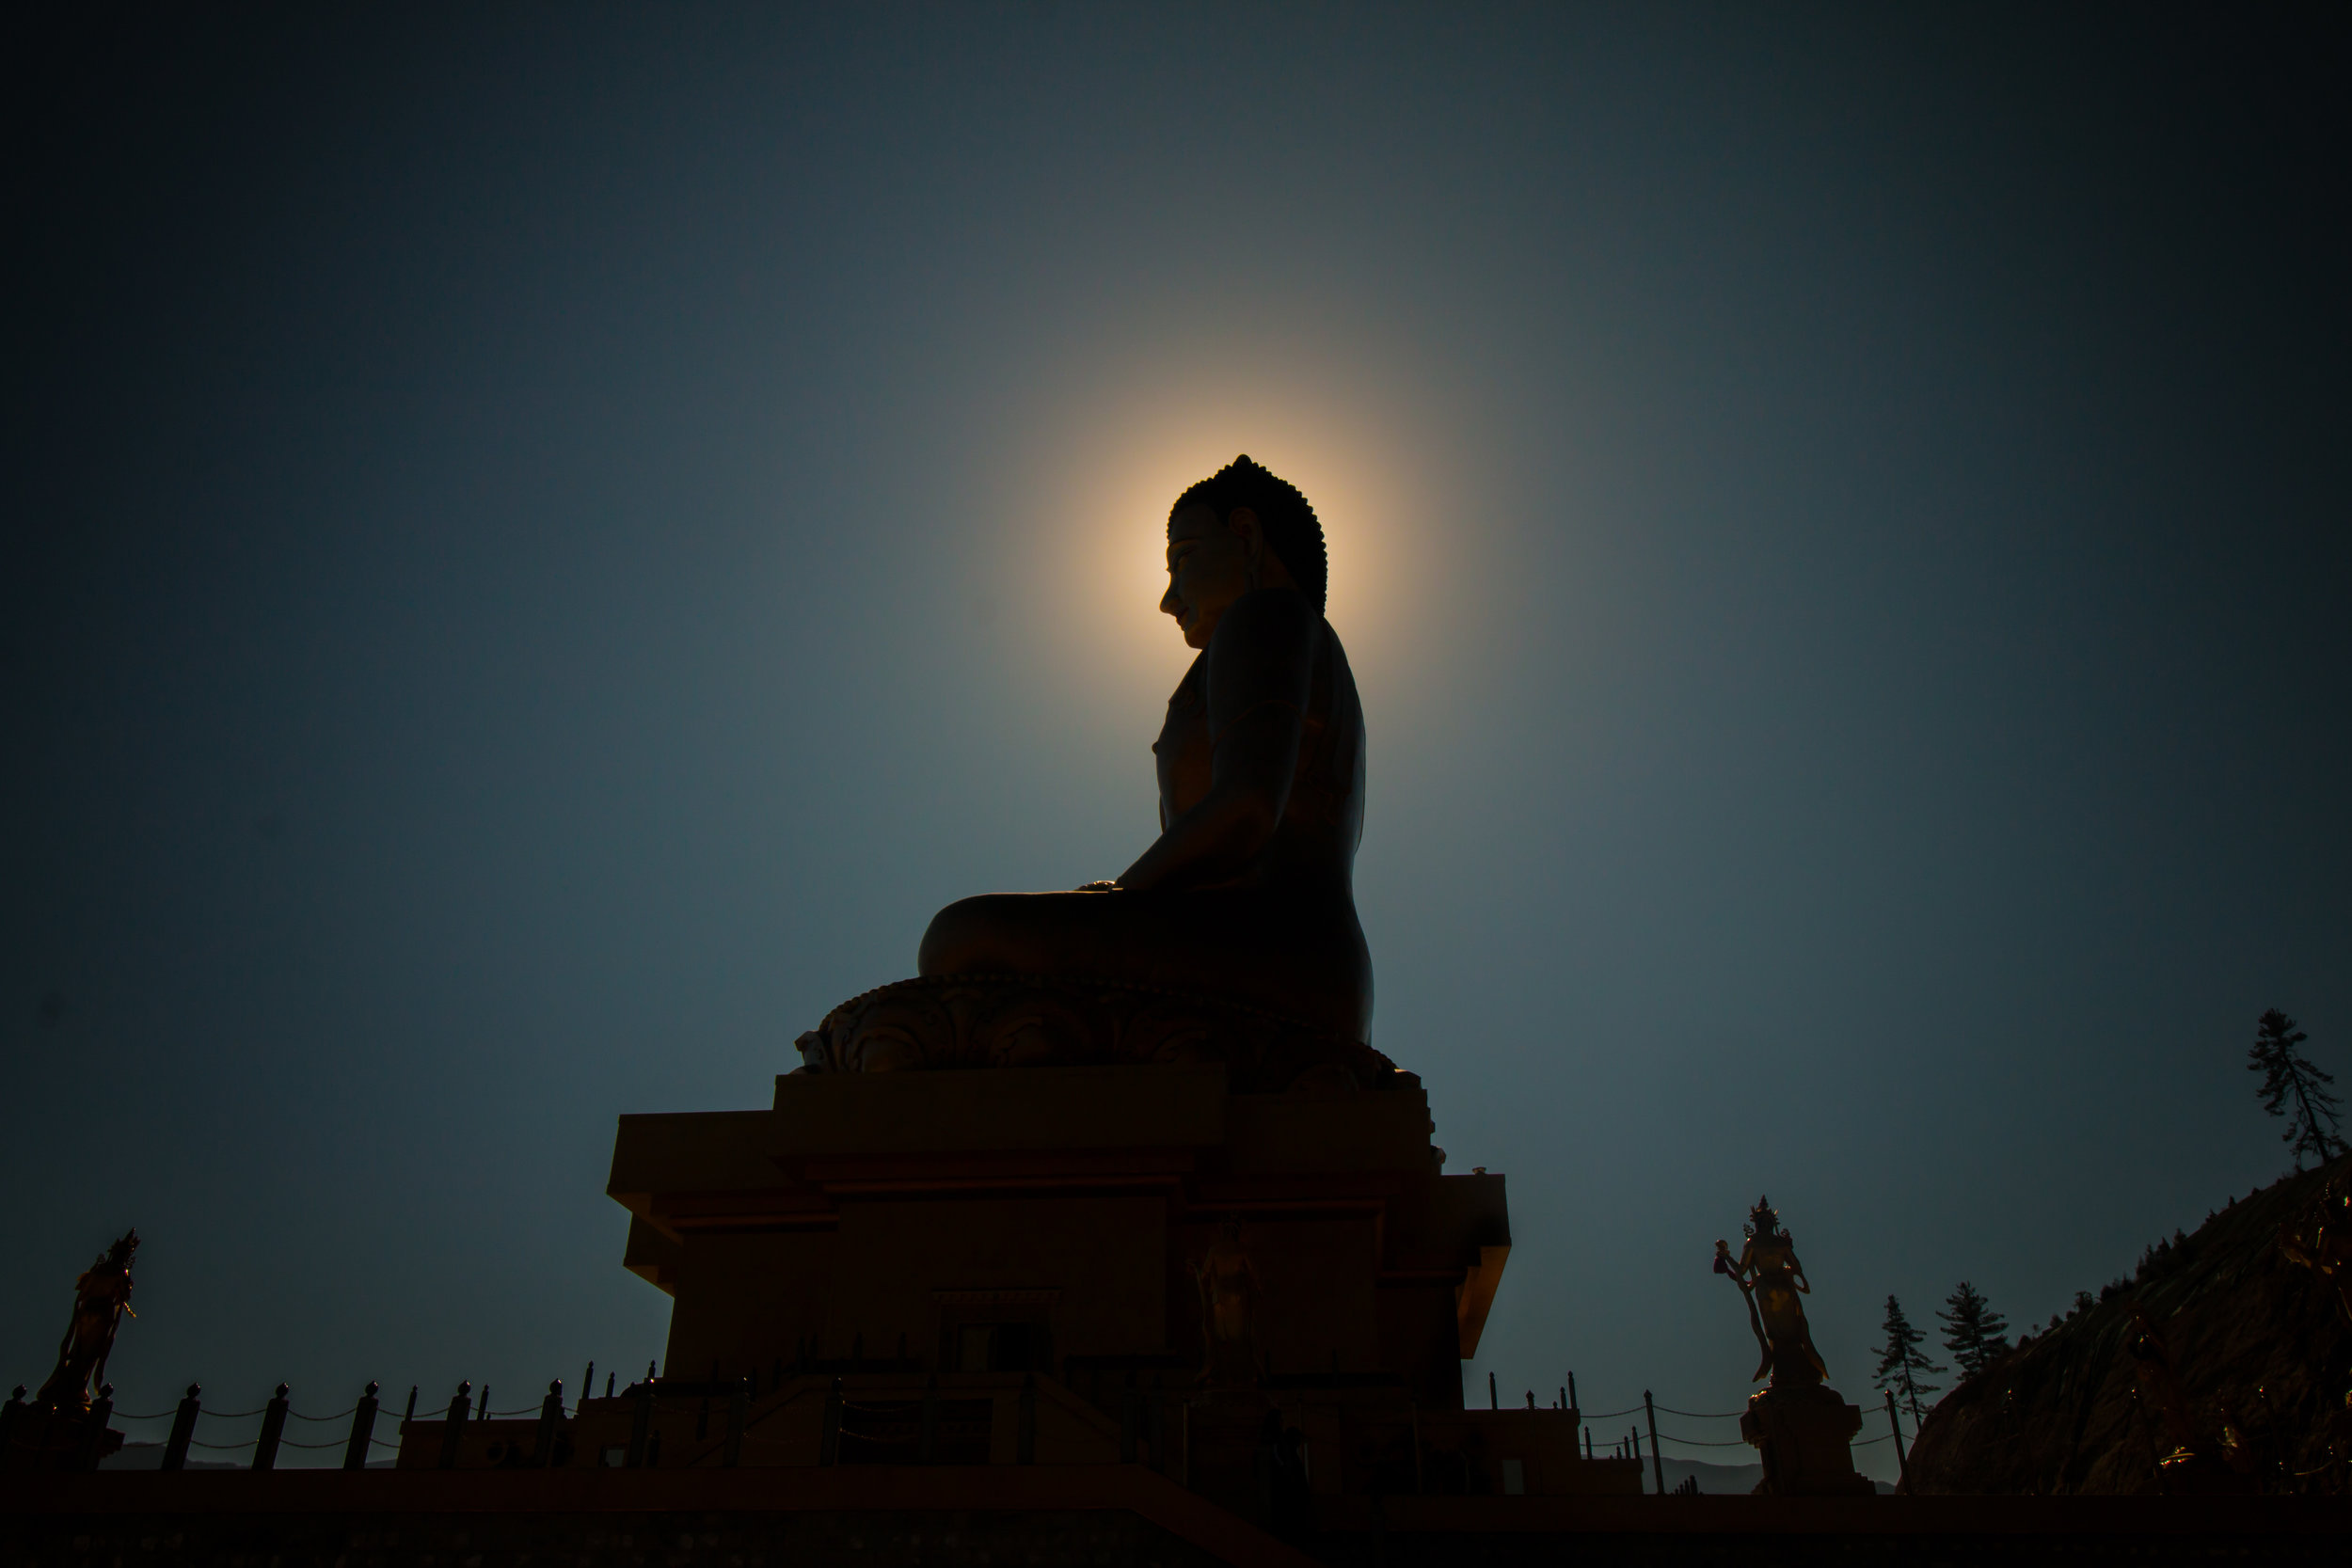 Buddha silhouetted by the moon